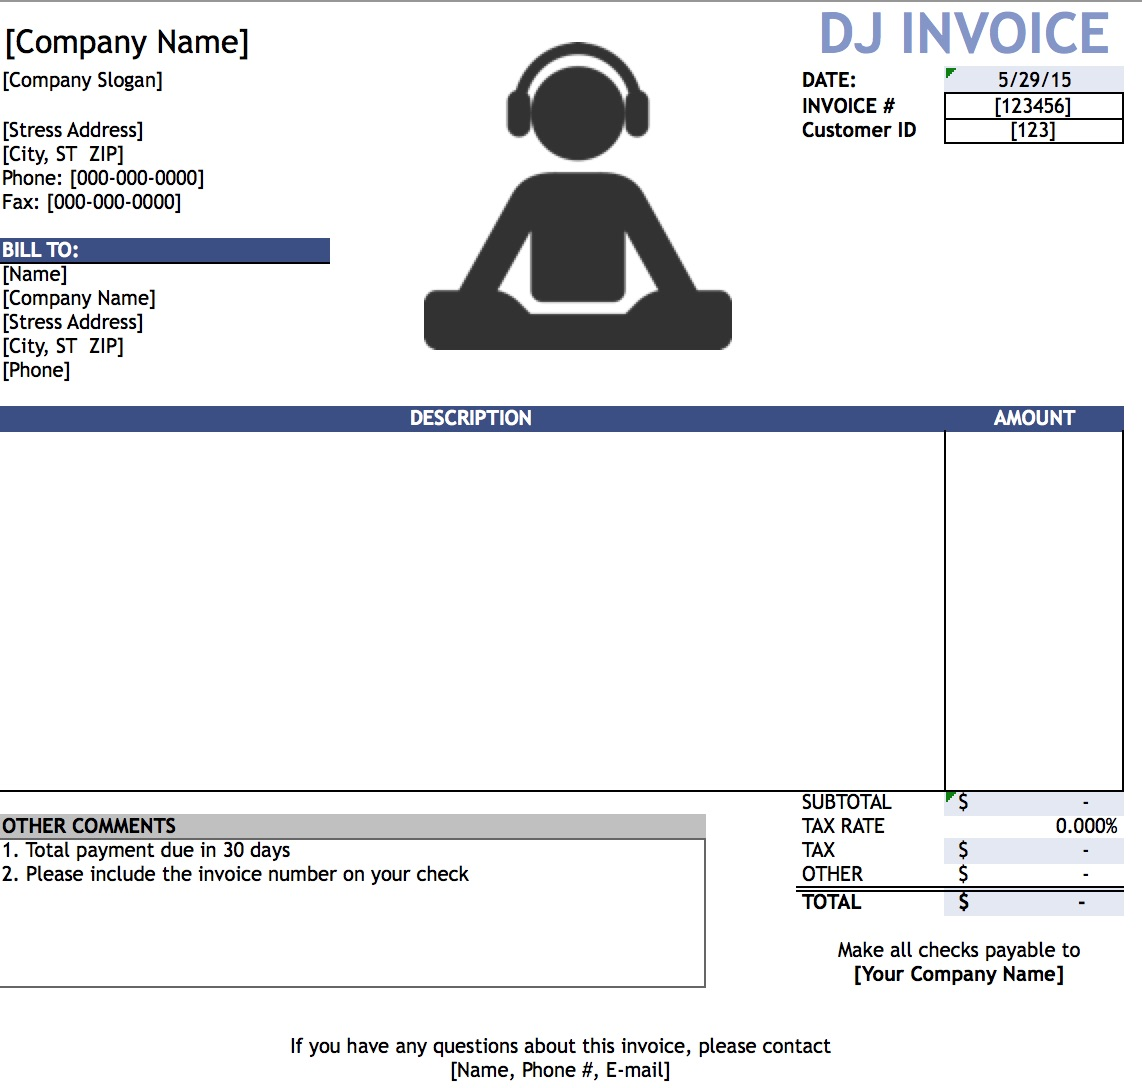 Free DJ Disc Jockey Invoice Template Excel PDF Word Doc - Invoice template excel free download online store builder